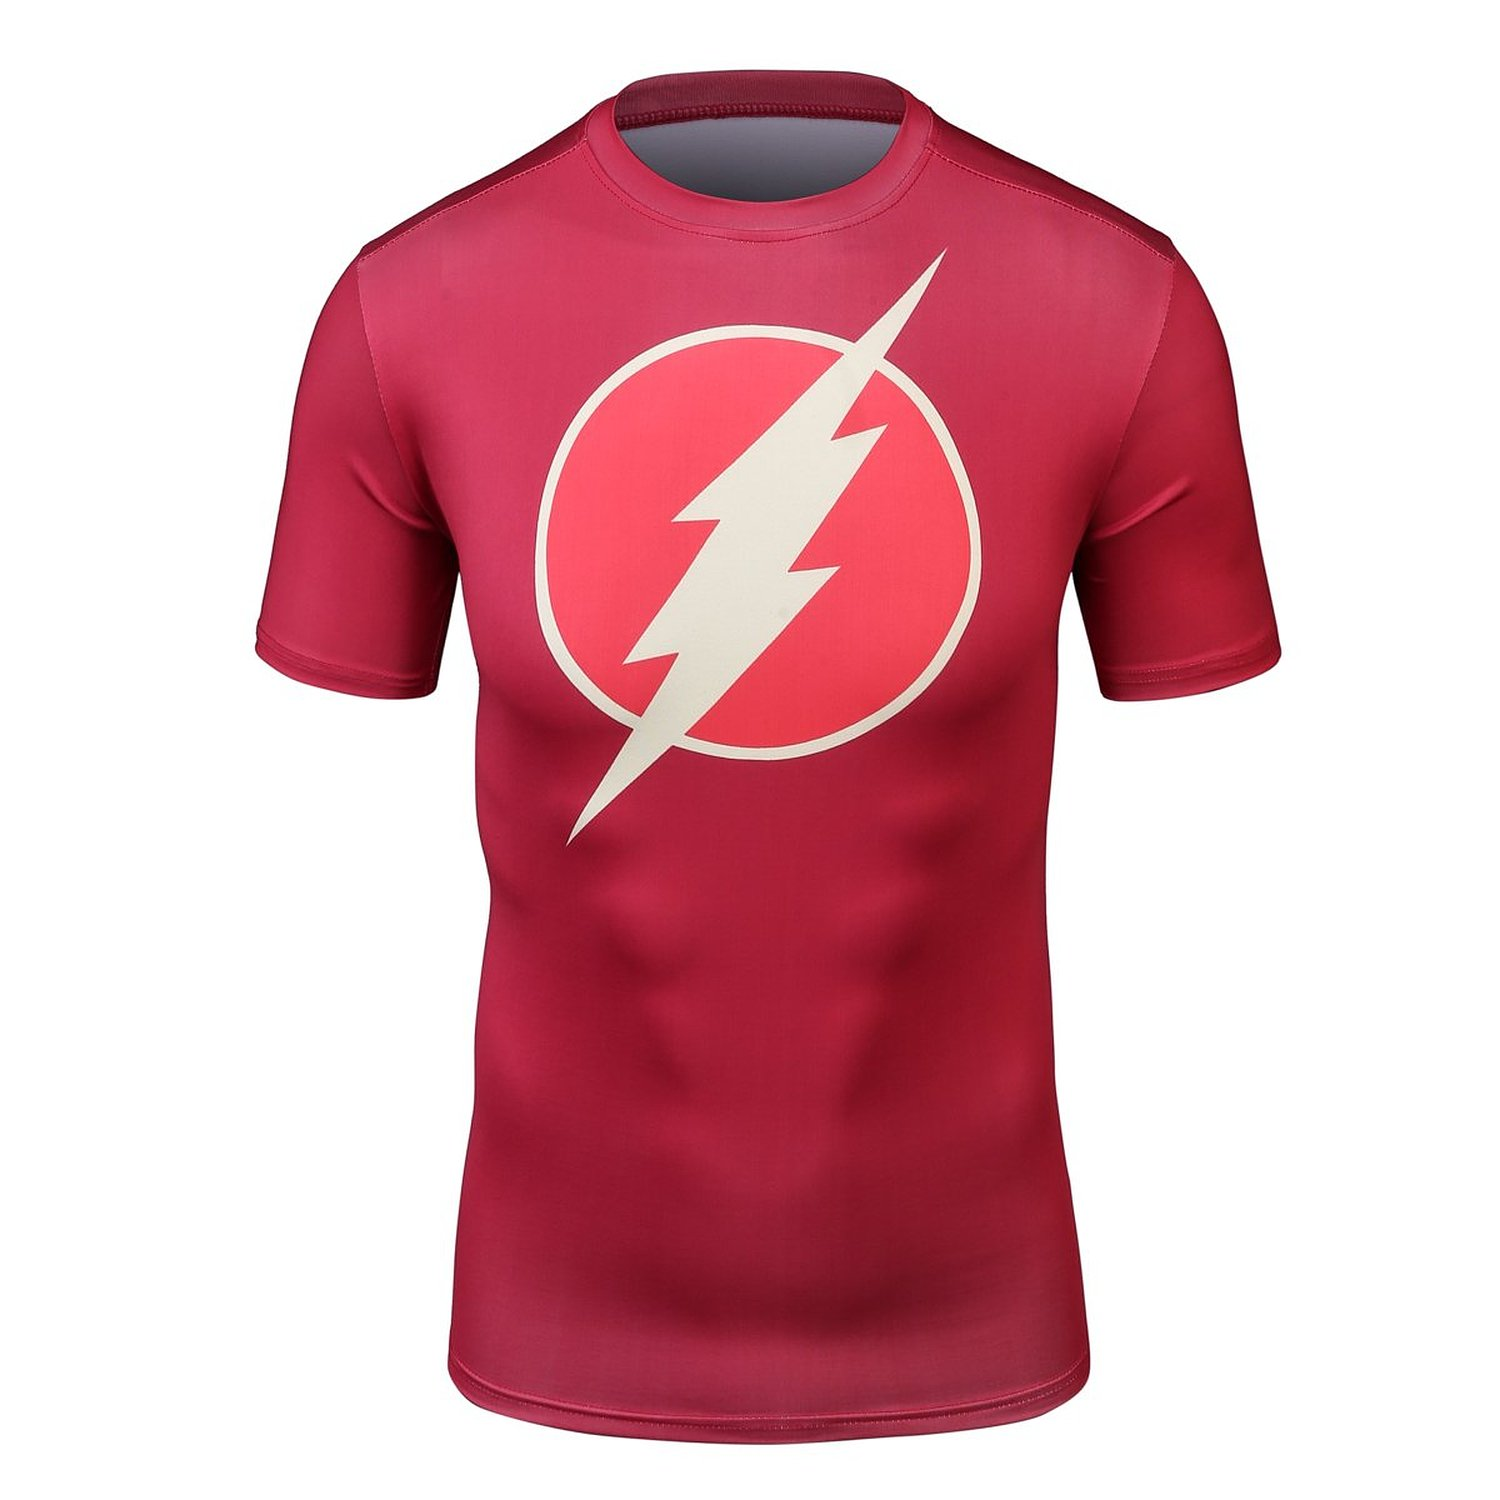 Red Plume Men's Compression T-shirt ,Sports Jogging Fitness Red Flash Man Shirt(China (Mainland))